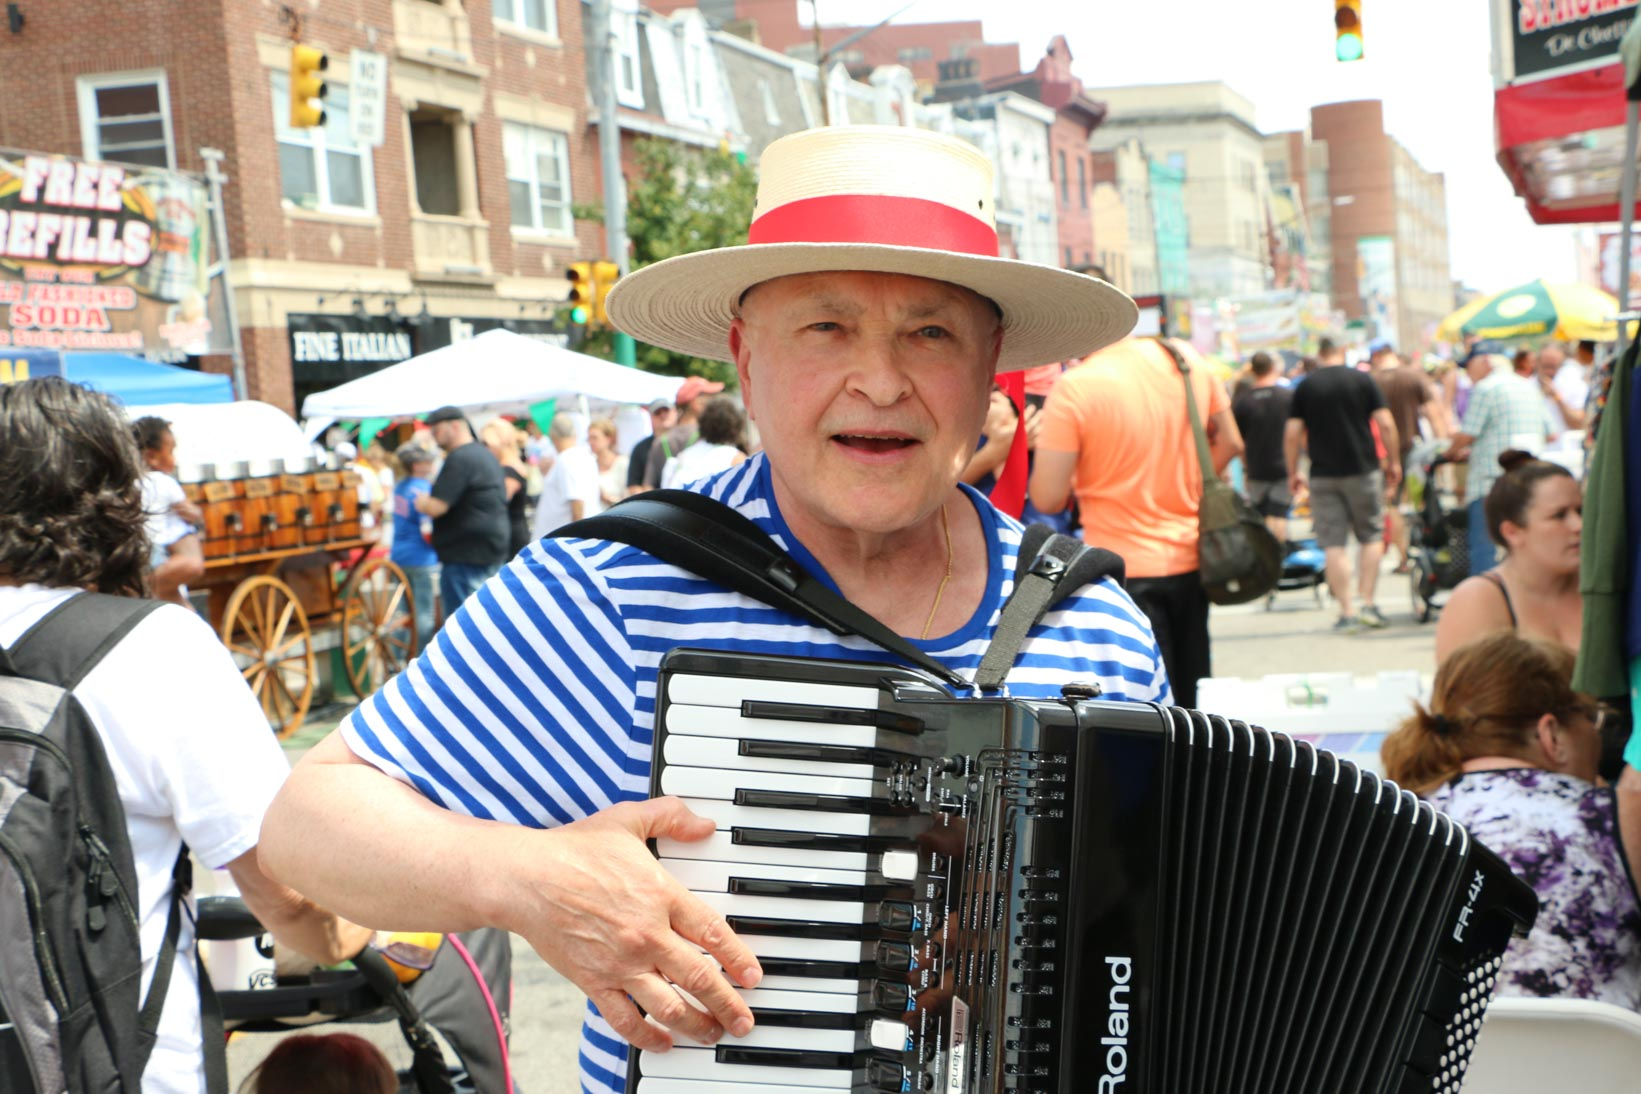 Bring your main squeeze or just have a good time solo at Little Italy Days in Bloomfield.